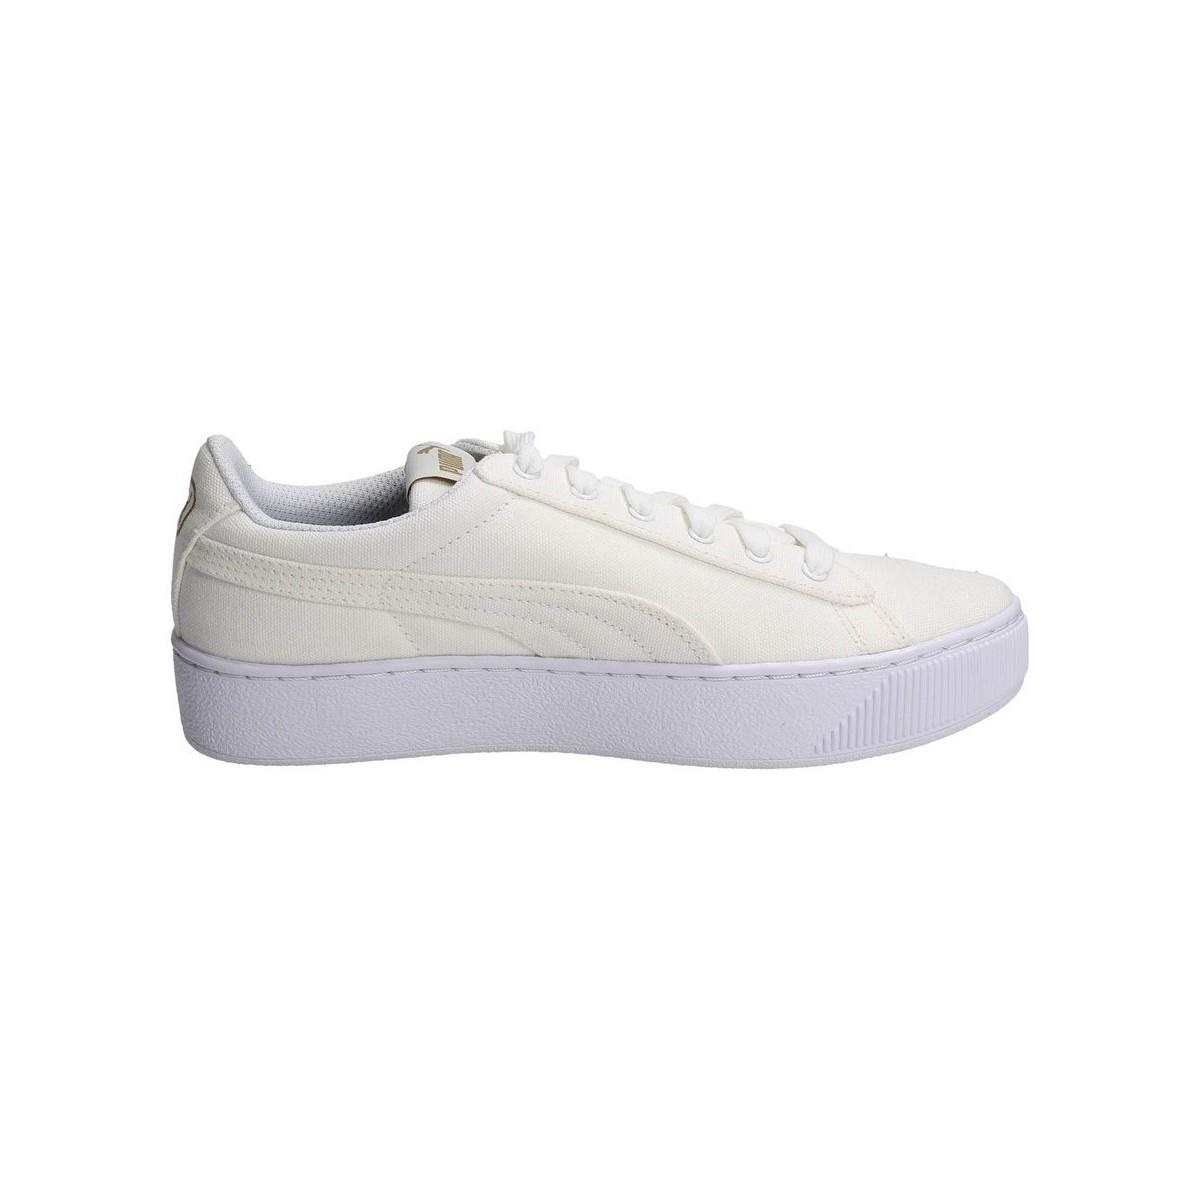 432074df792 PUMA - Vikky Platform Women s Shoes (trainers) In White - Lyst. View  fullscreen